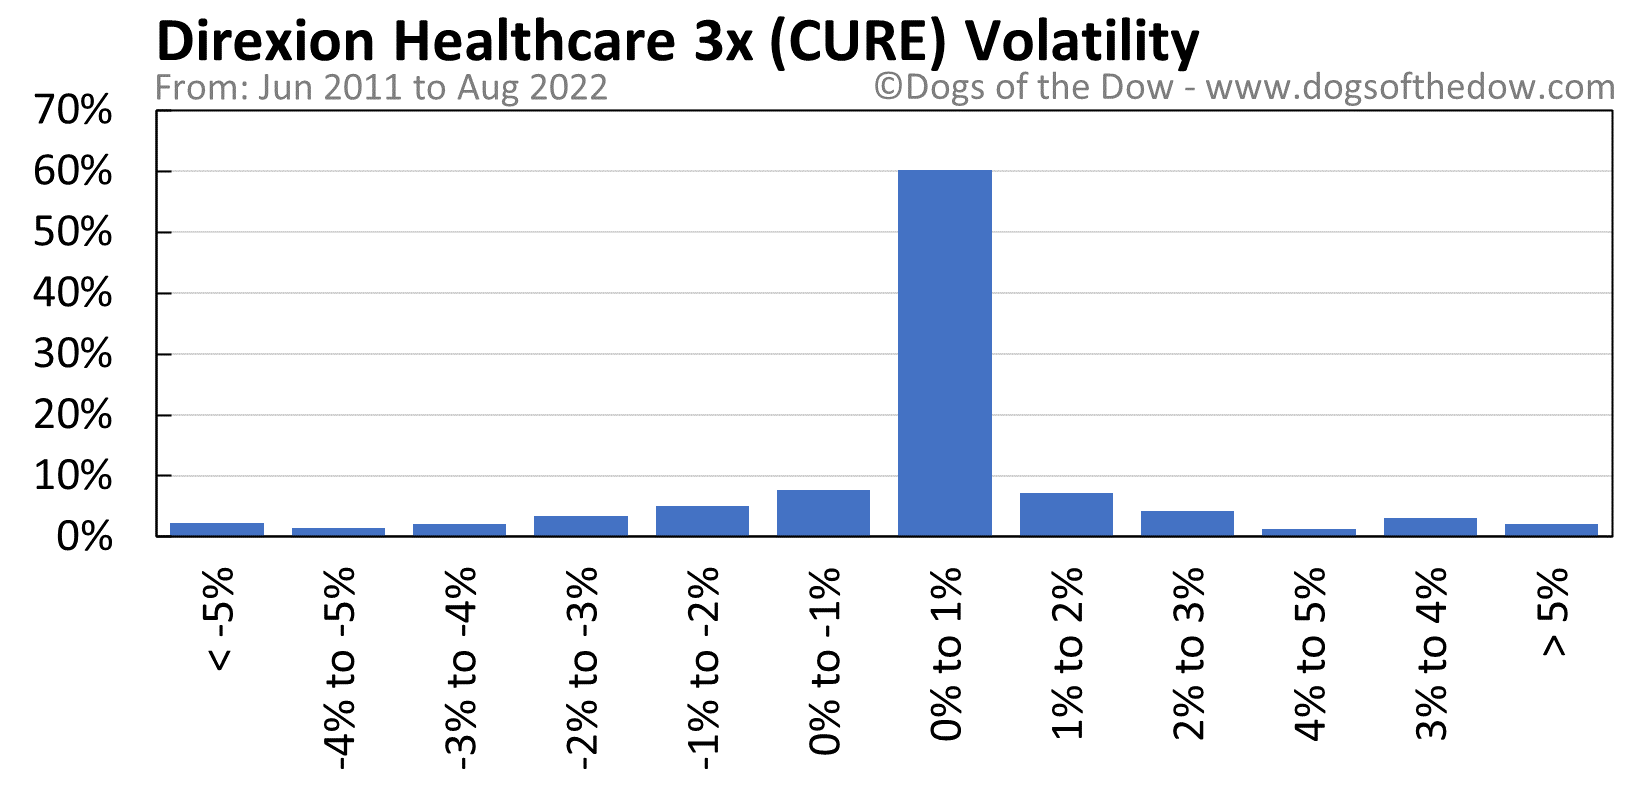 CURE volatility chart